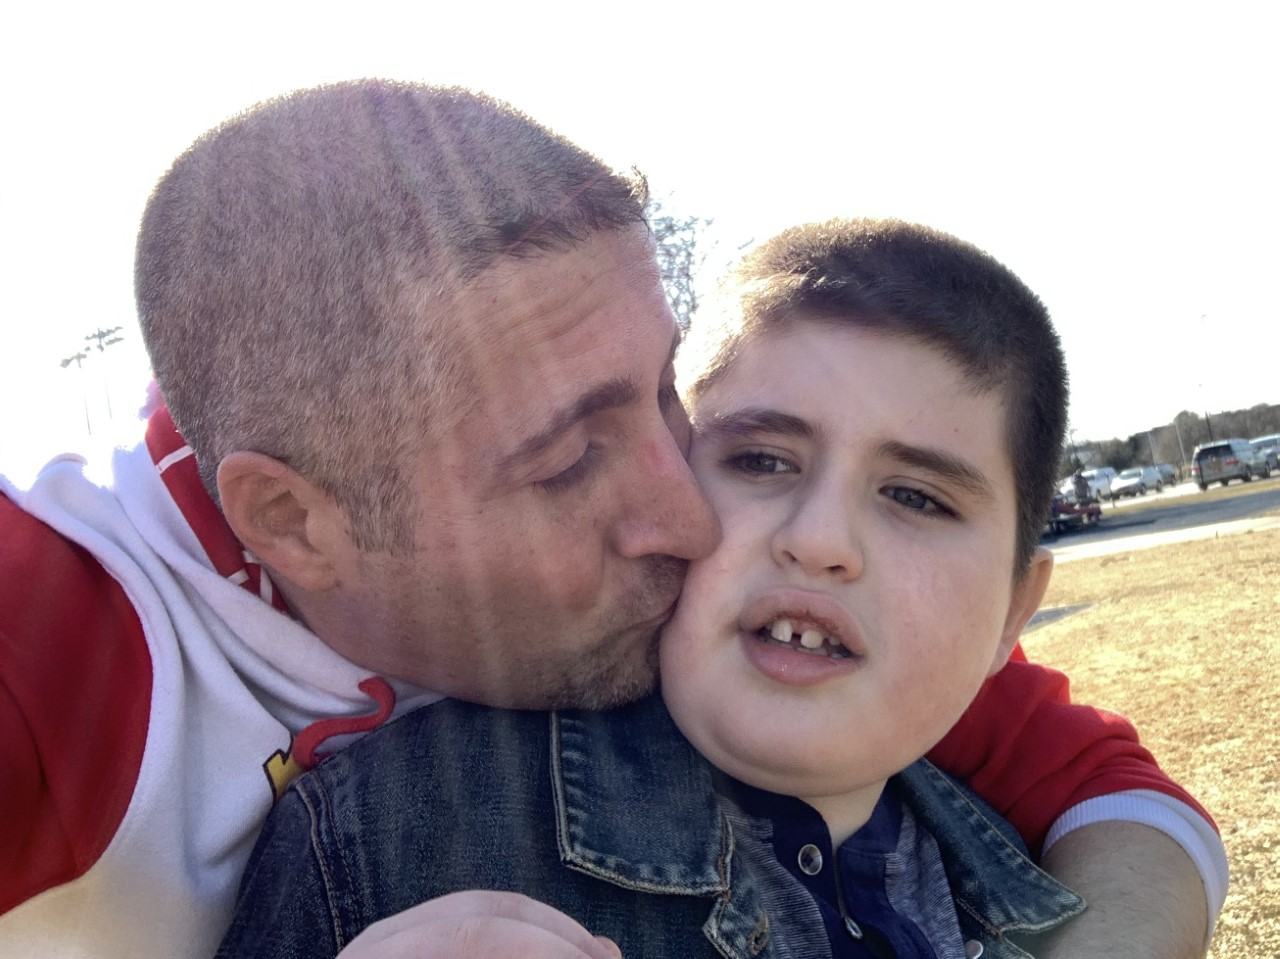 Father kissing his son on the cheek